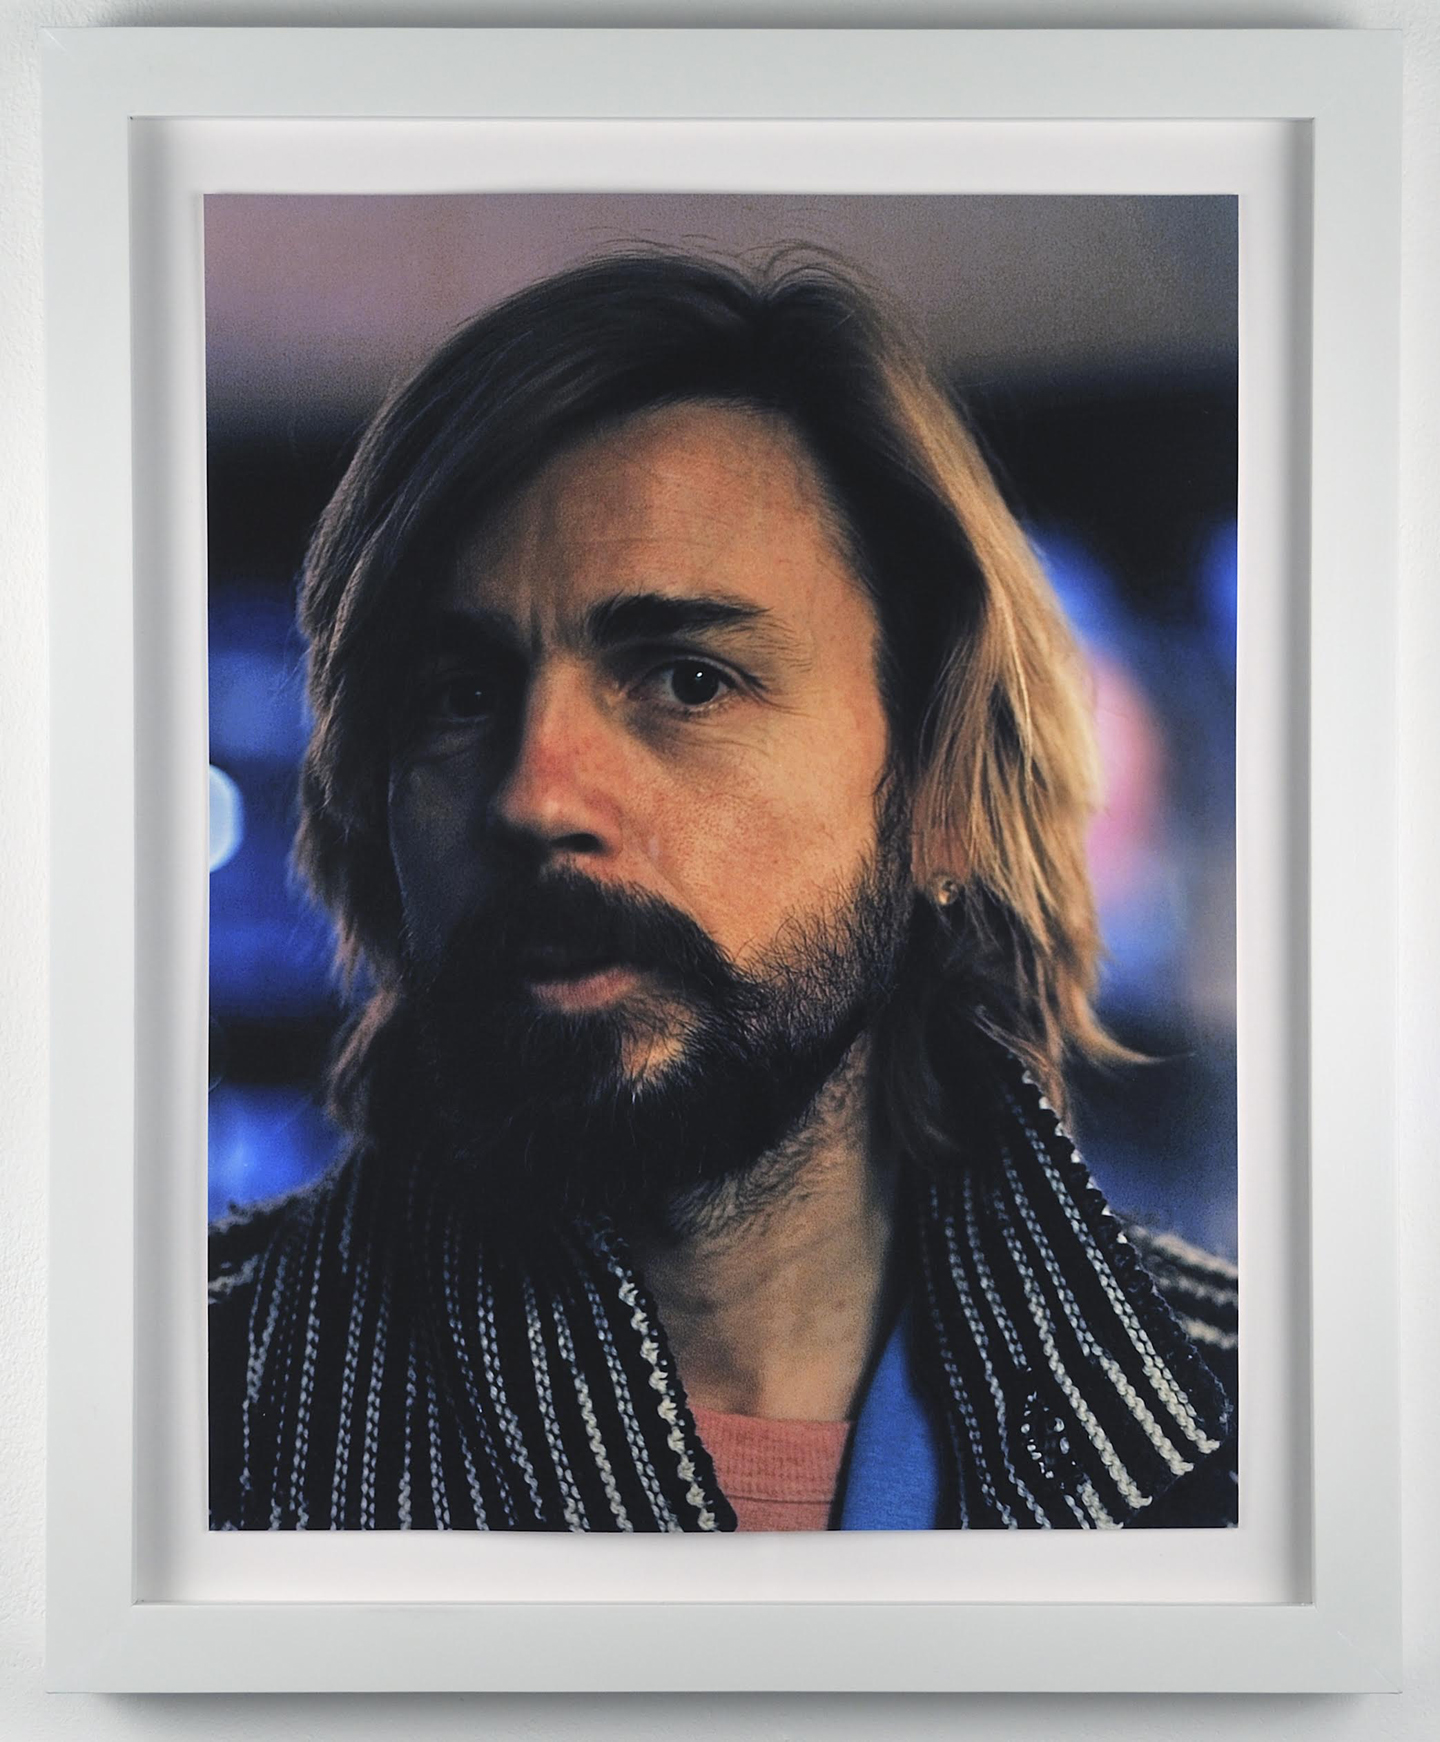 Ryan Gander, A portrait of Mark Leckey, 2009. Courtesy: the artist and Metro Pictures, NewYork